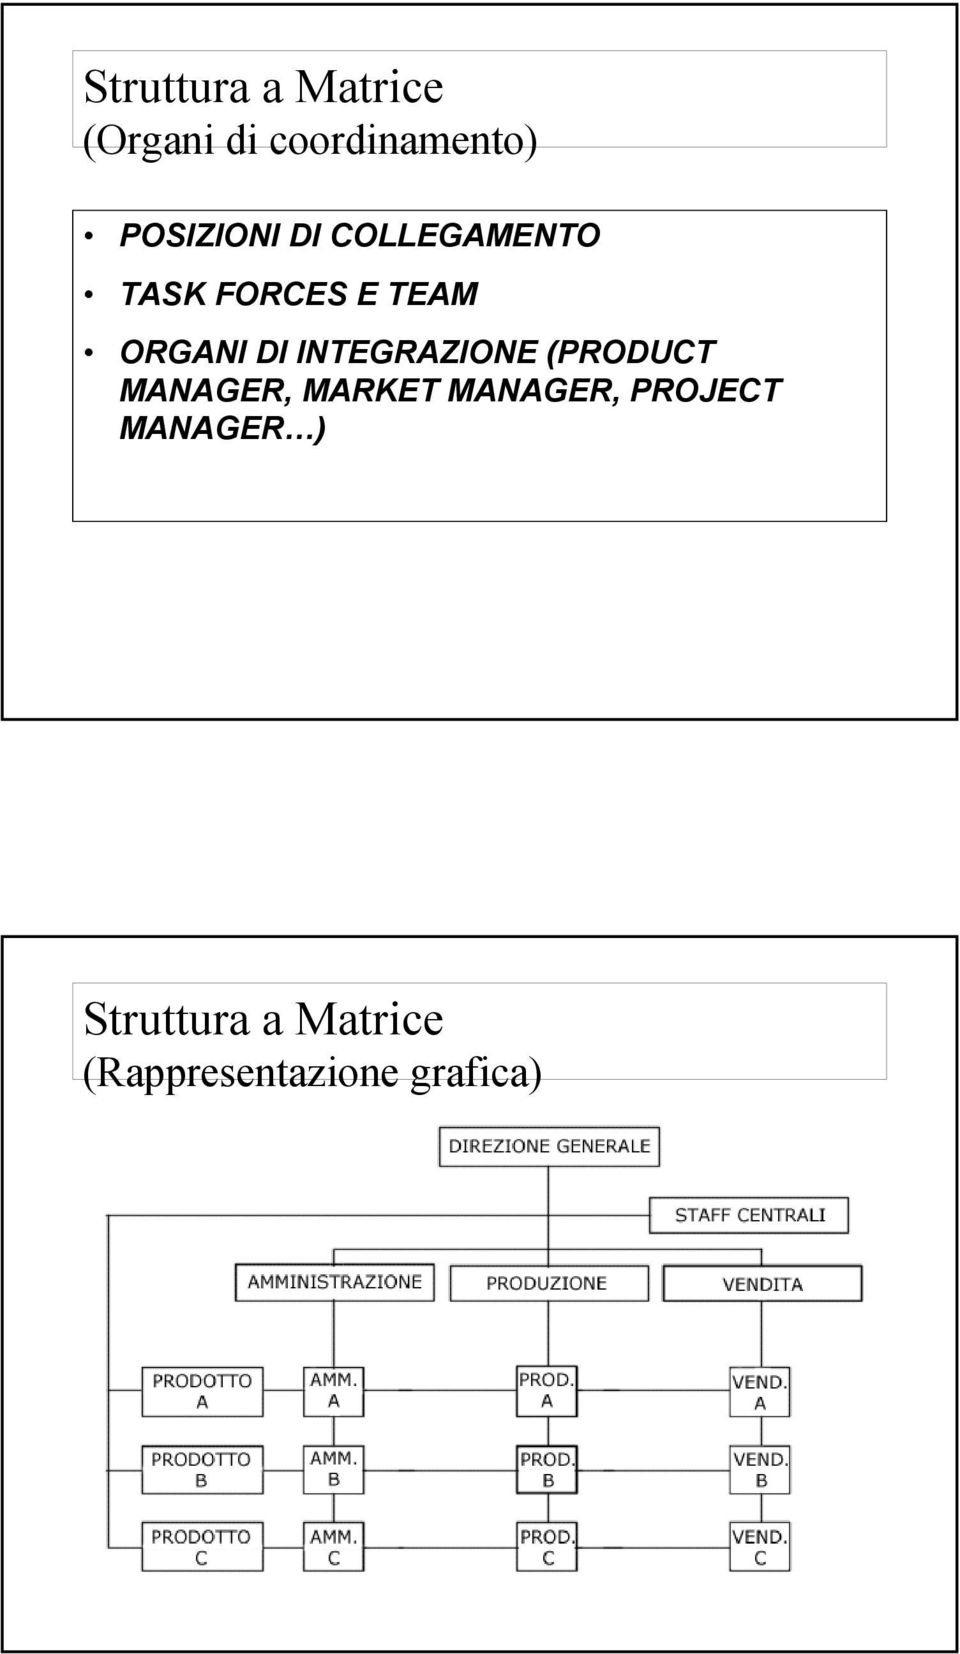 DI INTEGRAZIONE (PRODUCT MANAGER, MARKET MANAGER,